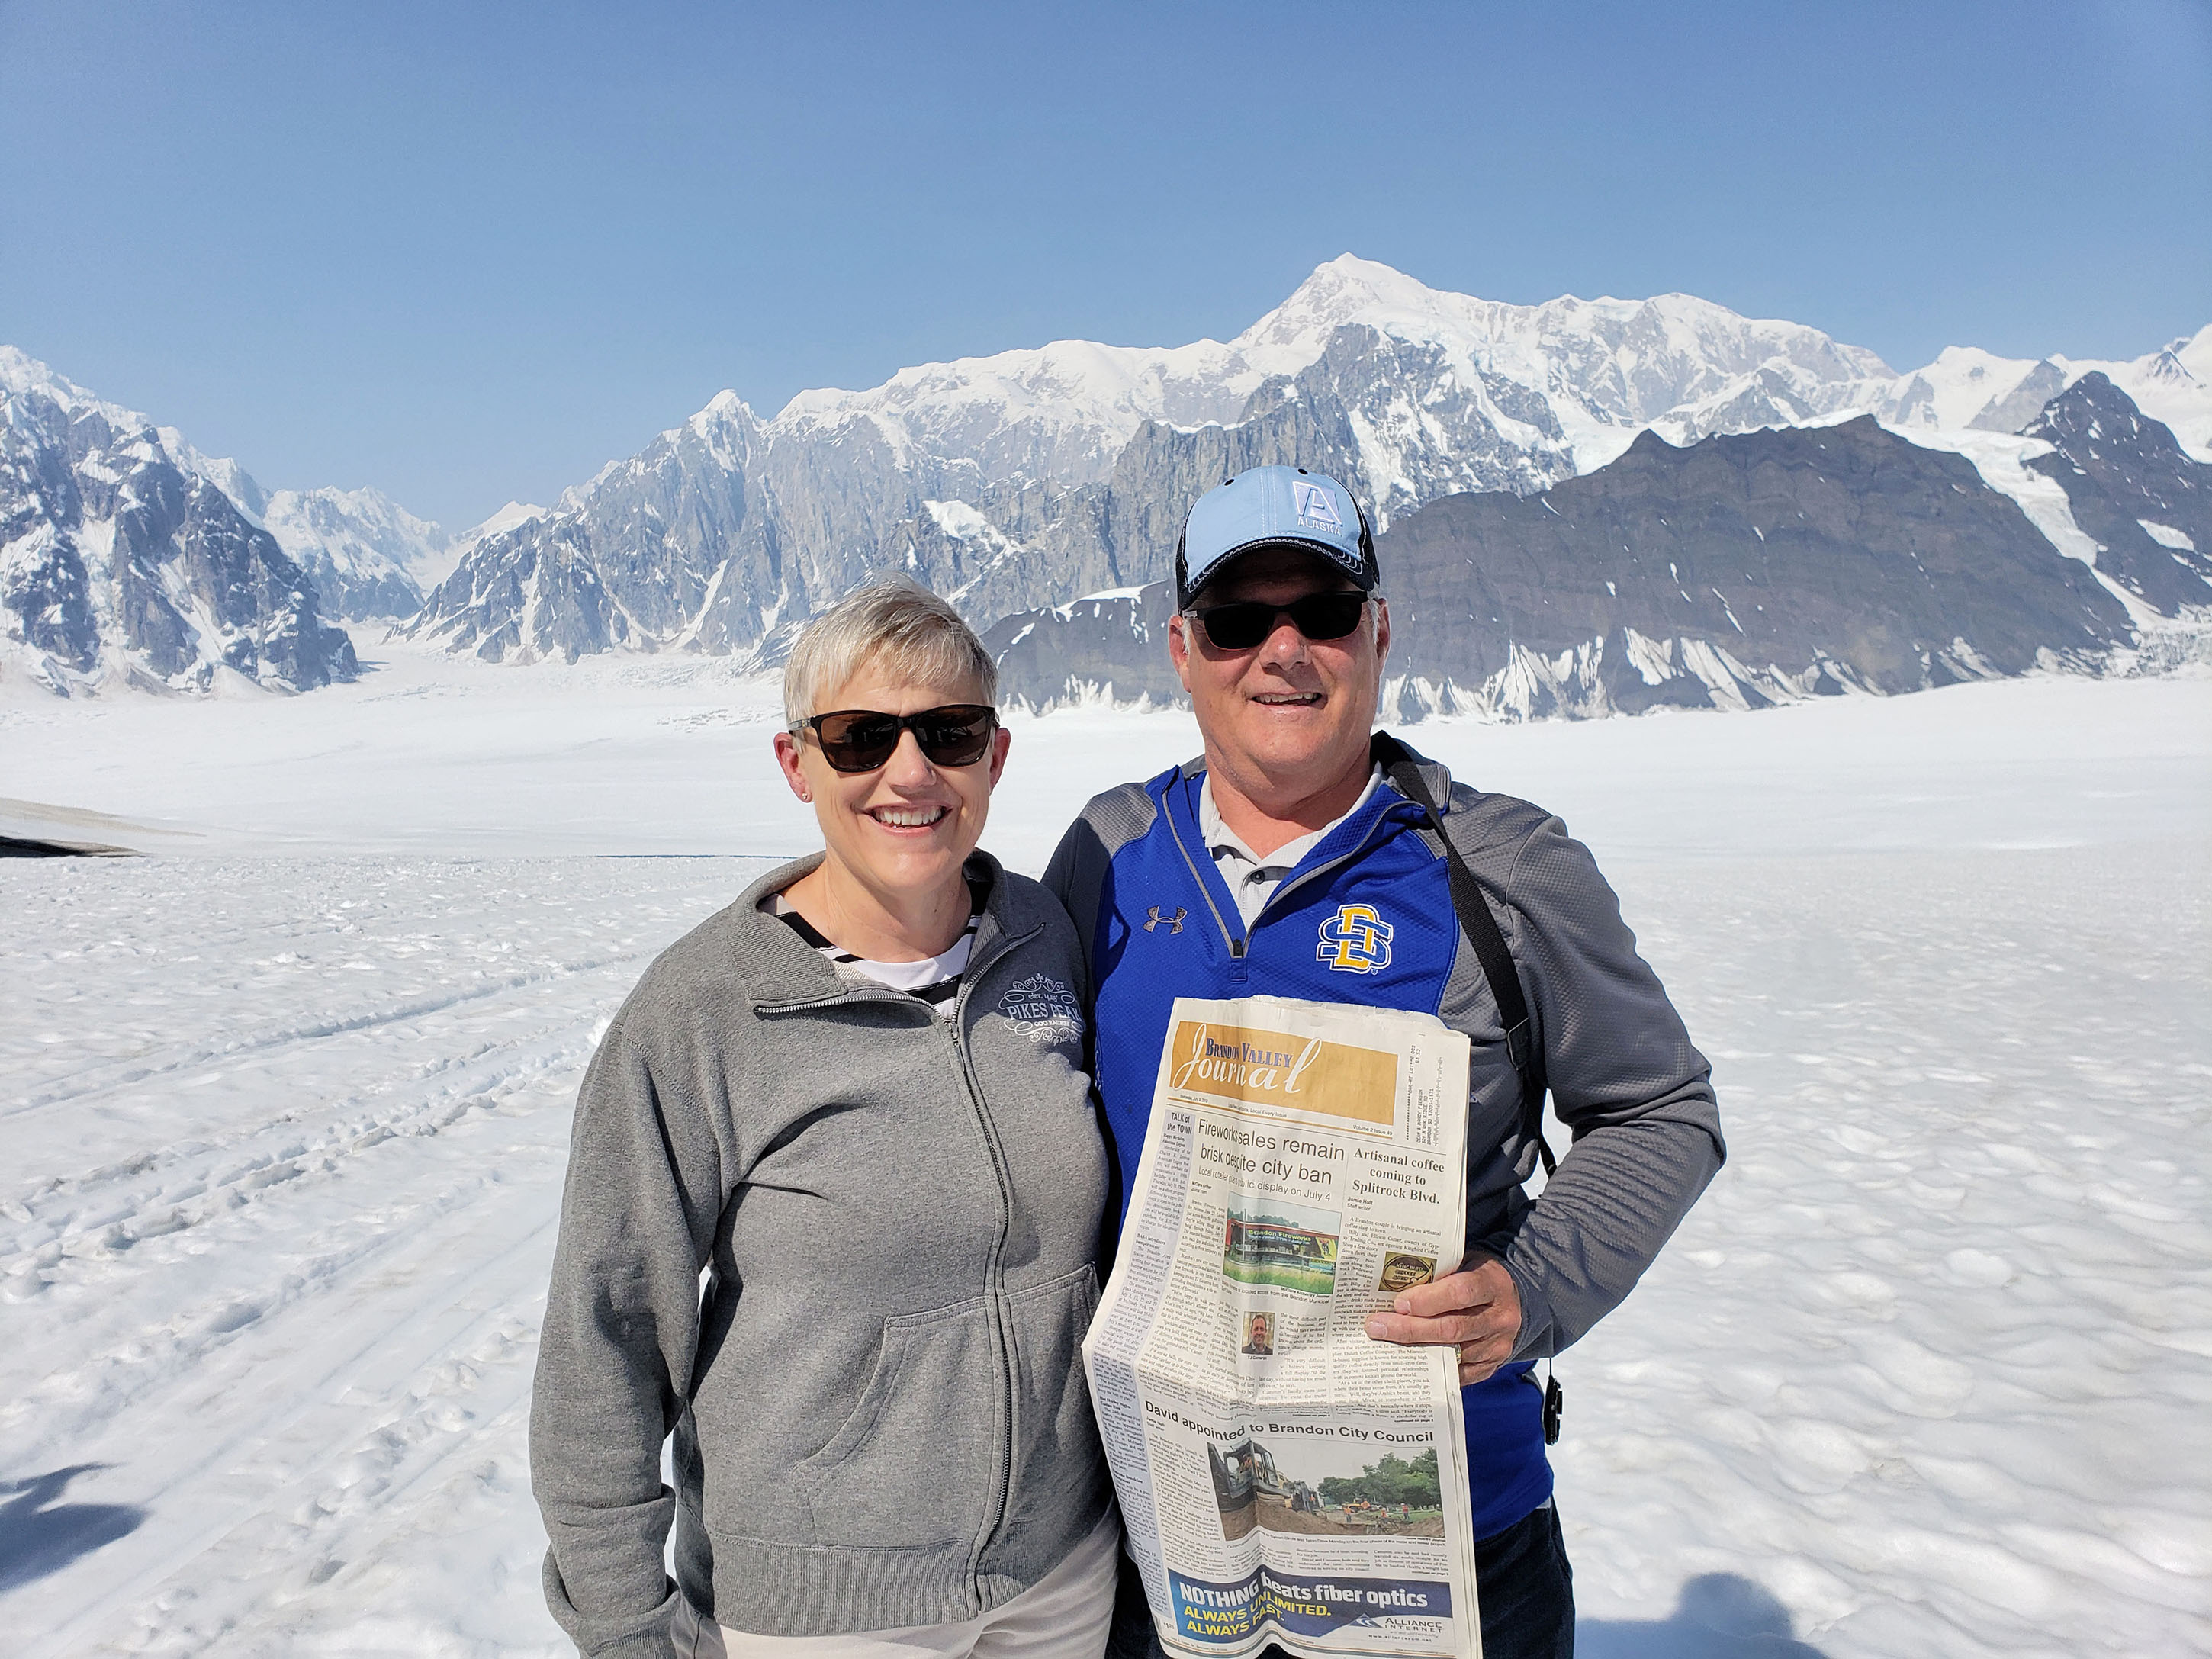 "<span class=""s1"">A Brandon husband and wife, Dean and Nancy Pierson, recently returned from a ""tremendous trip to Alaska"" and they brought the <i>Brandon Valley Journal</i> with them. They're pictured at Denali Park, which is filled with animals and awesome views, including the glacier, Denali. ""A little fact,"" the Piersons shared, ""is that it used to be called 'Mount McKinley,'"" but is now referred as ""Denali."" If you're venturing out, take the <i>Brandon Valley Journal</i> along for the ride, snap a photo and submit it to us for publication in a future issue of your local newspaper.<span class=""Apple-converted-space""> <strong>Submitted photo</strong></span></span>*/"